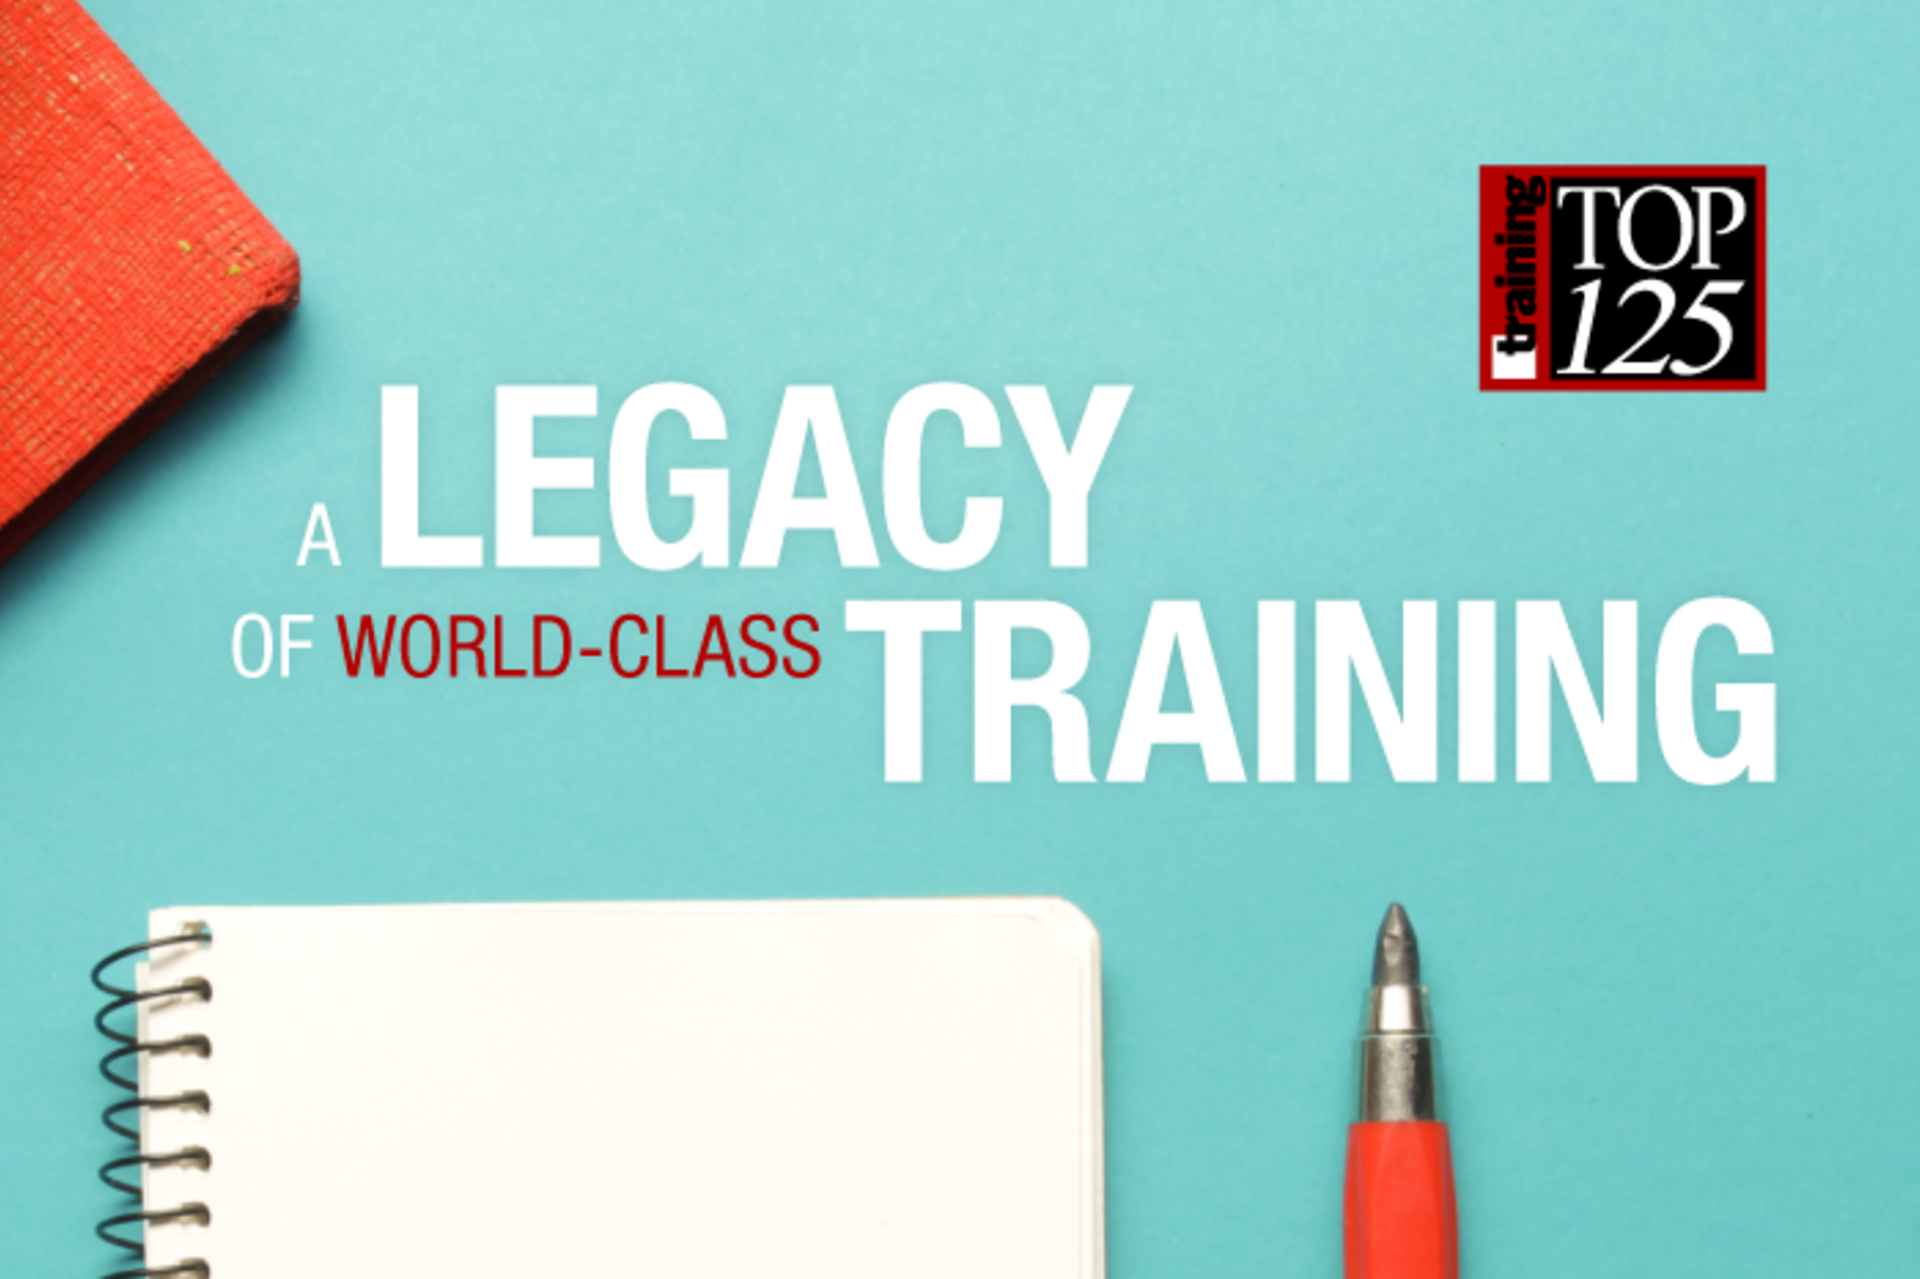 KW Ranked #1 in Training and Coaching!